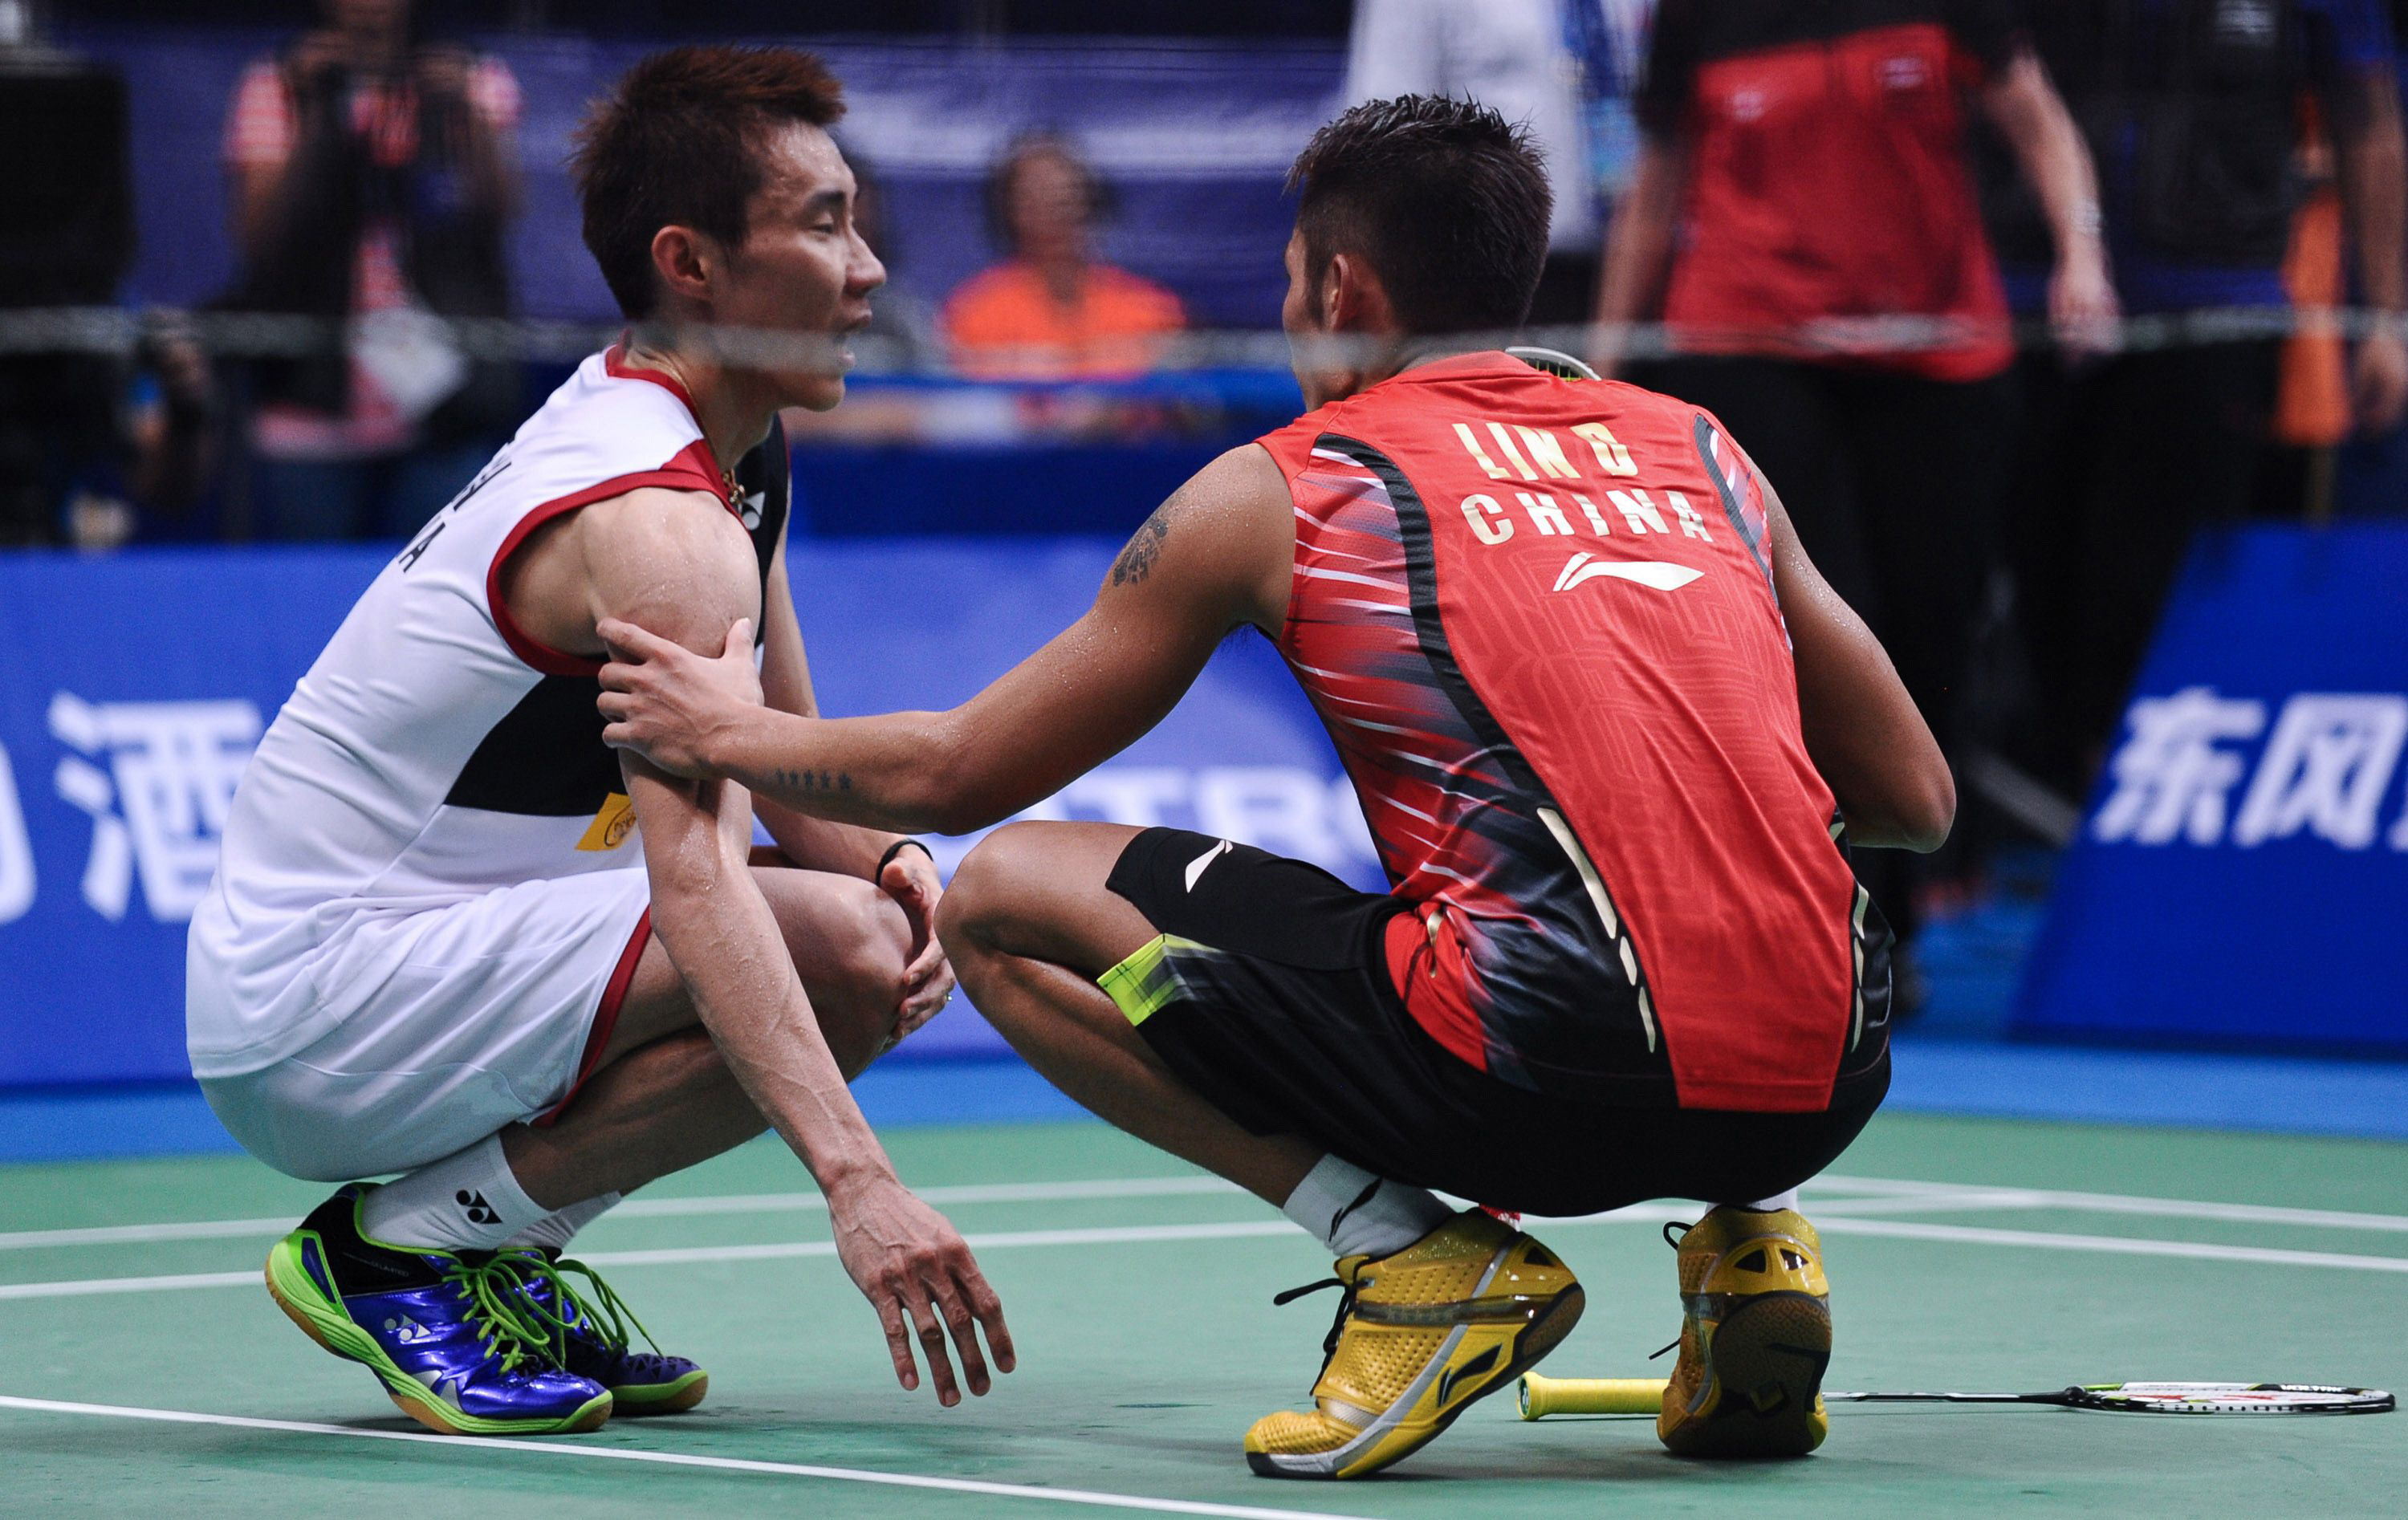 china 039 s lin dan r talks to malaysia 039 s lee chong wei after lee was injured during their men 039 s singles final at world badminton championships in guangzhou south china 039 s guangdong province on august 11 2013 lin dan won 16 21 21 13 20 17 after lee chongwei retired for injury photo afp